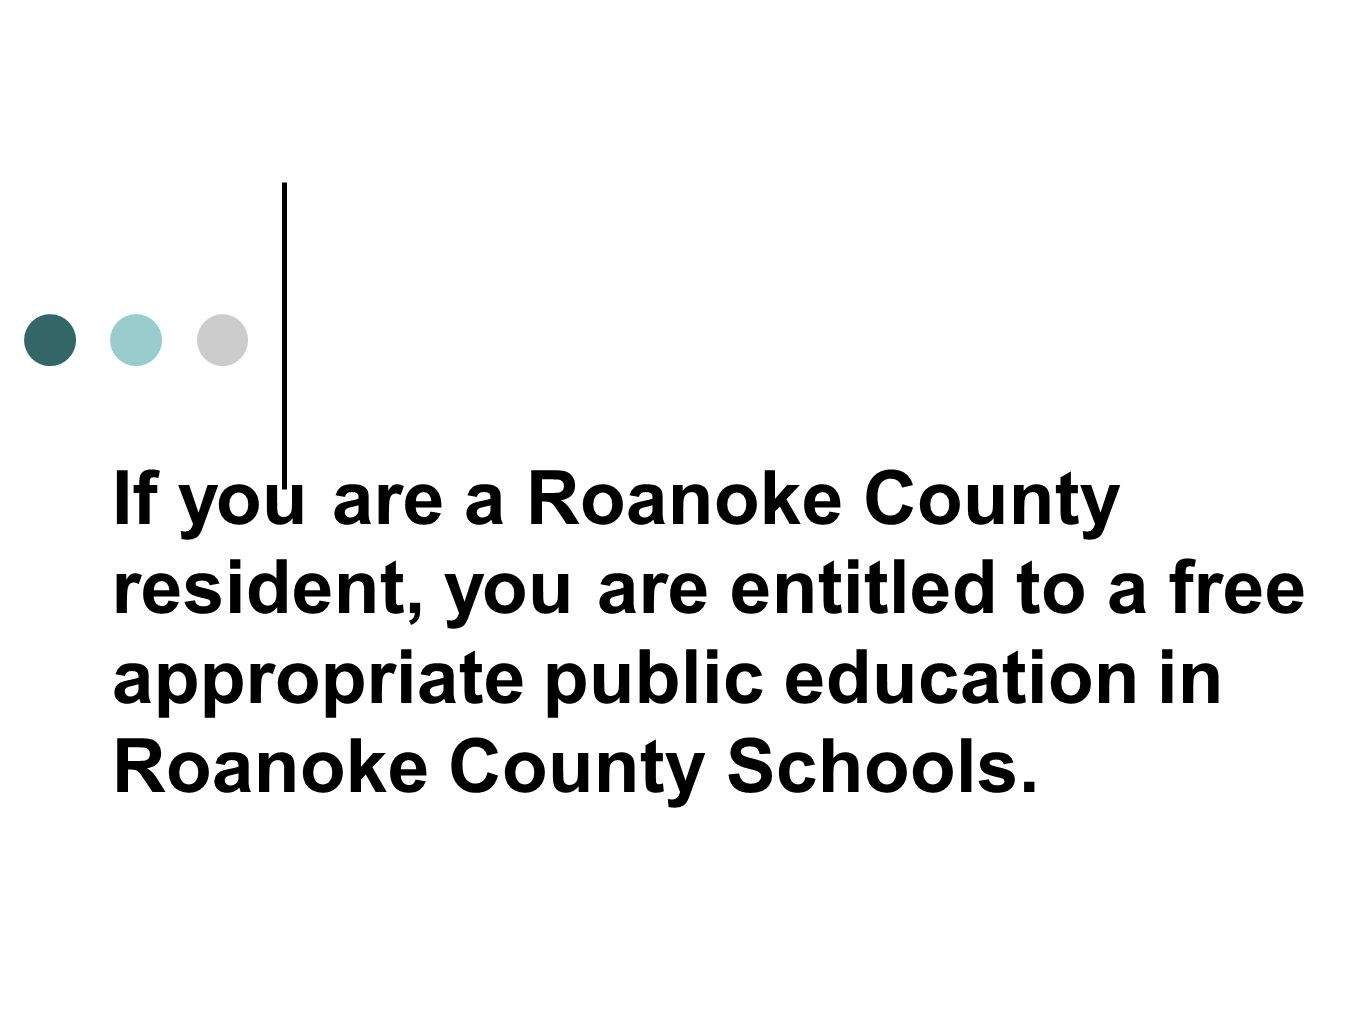 If you are a Roanoke County resident, you are entitled to a free appropriate public education in Roanoke County Schools.